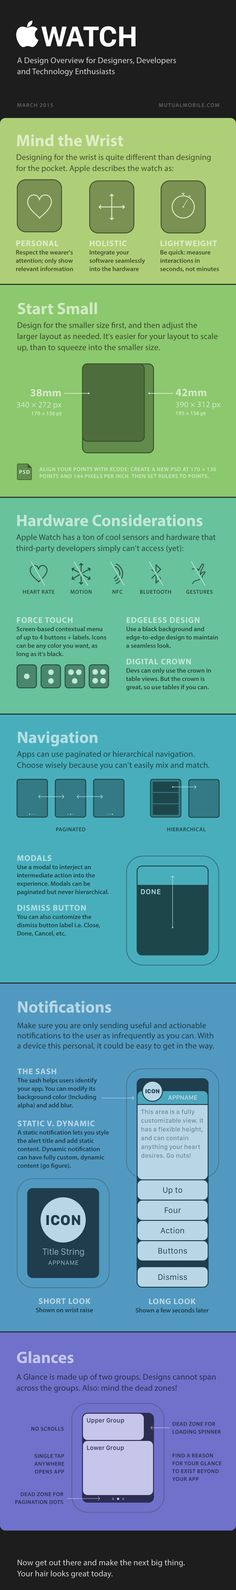 iClarified - Apple News - Apple Watch Design Overview [Infographic]